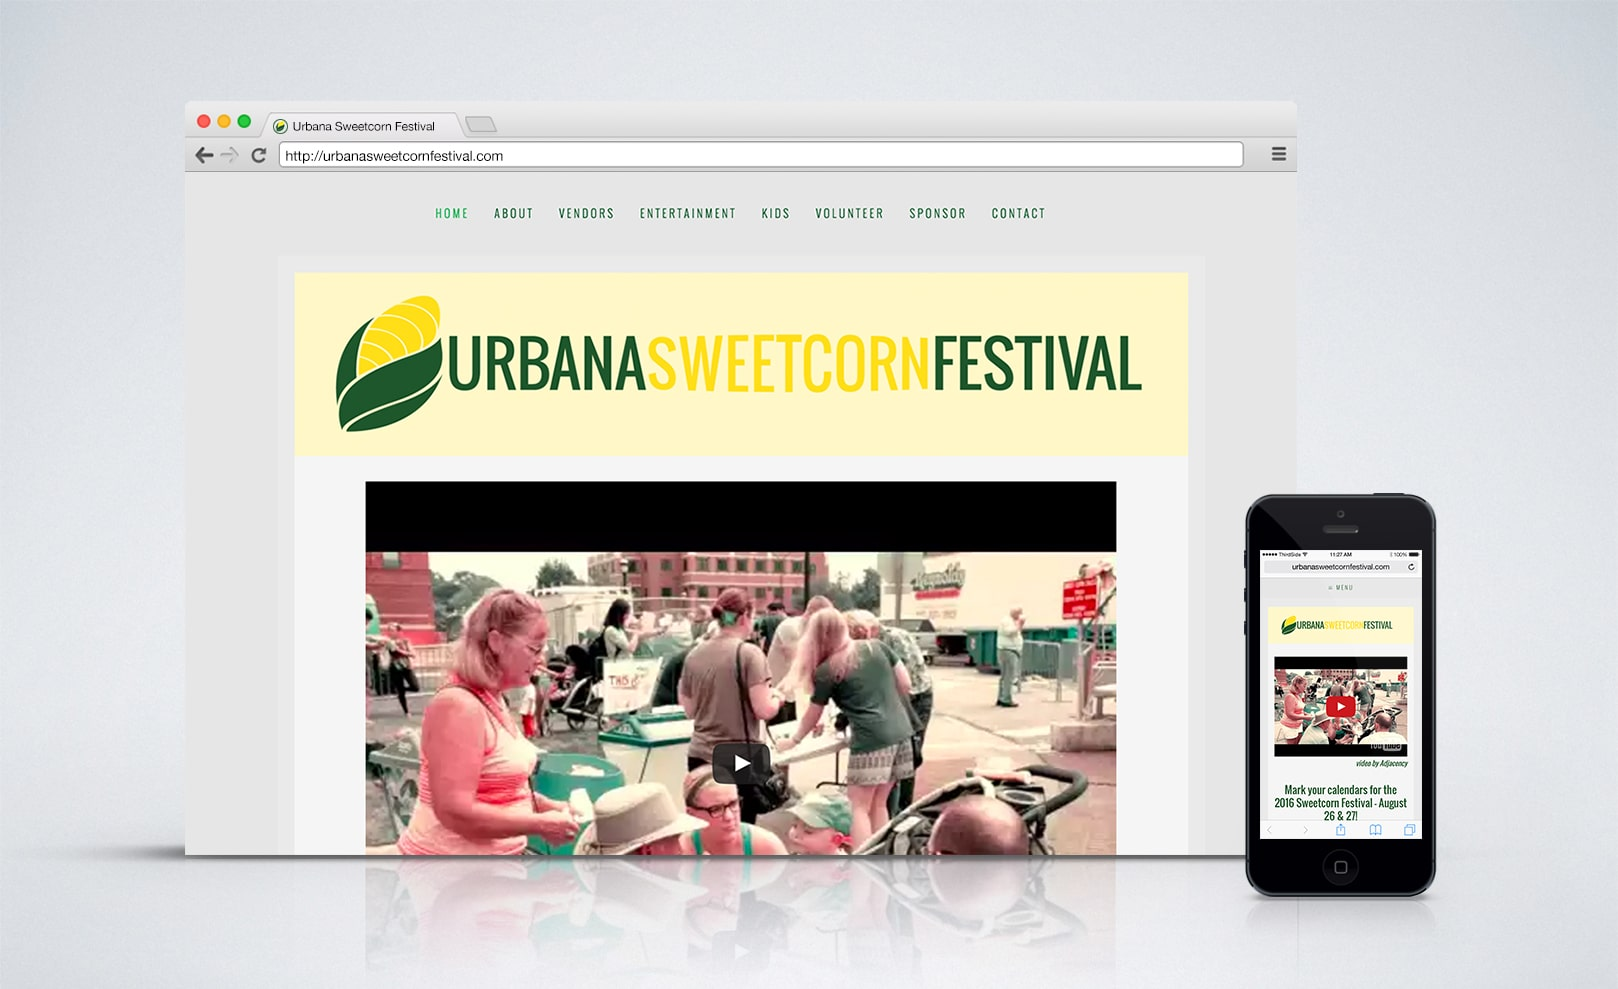 website for the Urbana Sweetcorn Festival